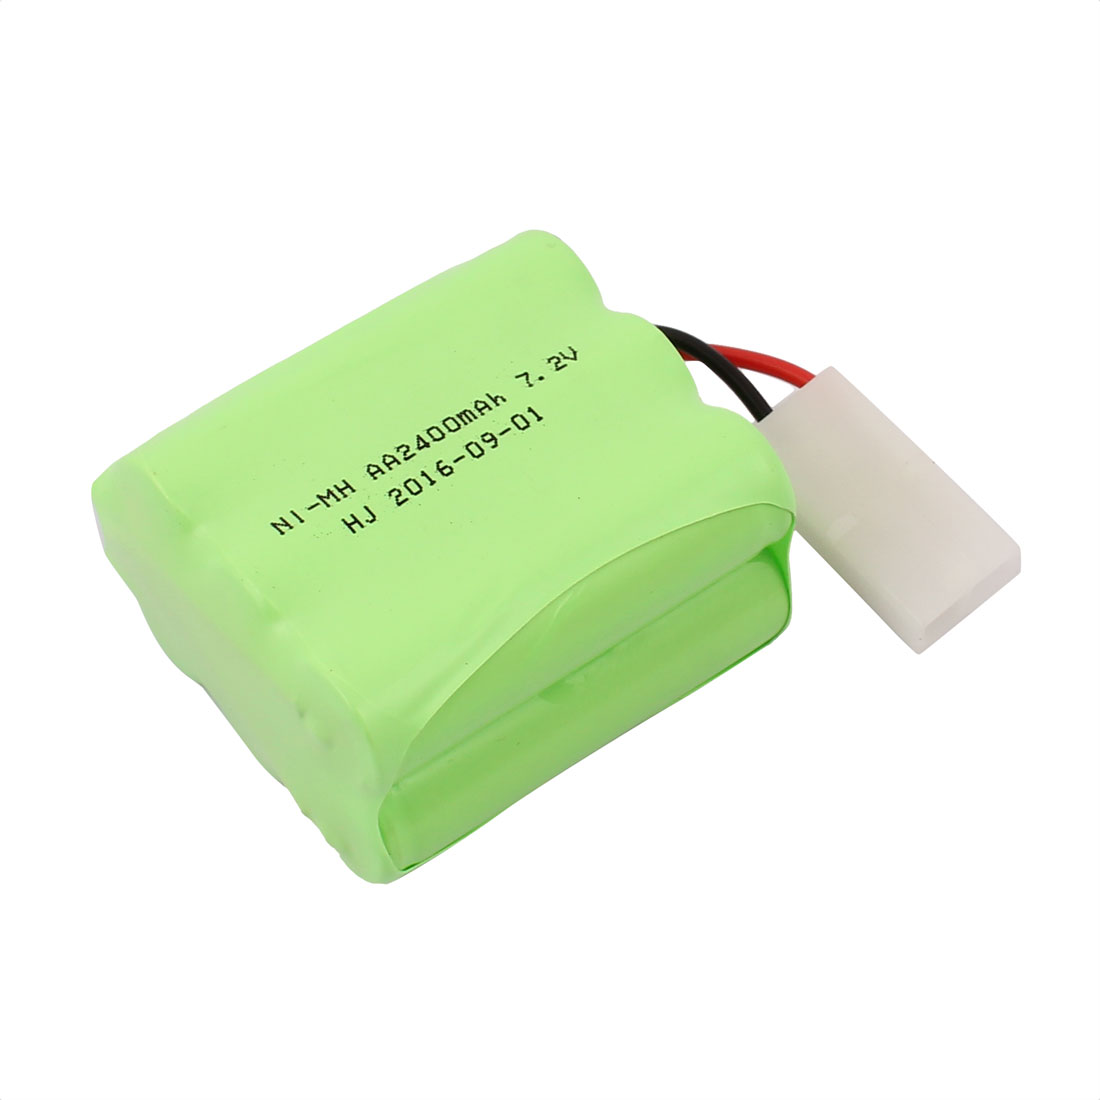 Unique Bargains DC 7.2V 2400mAh Rechargable Ni-MH 6 x AA Batteries Pack for RC Boat Aircraft